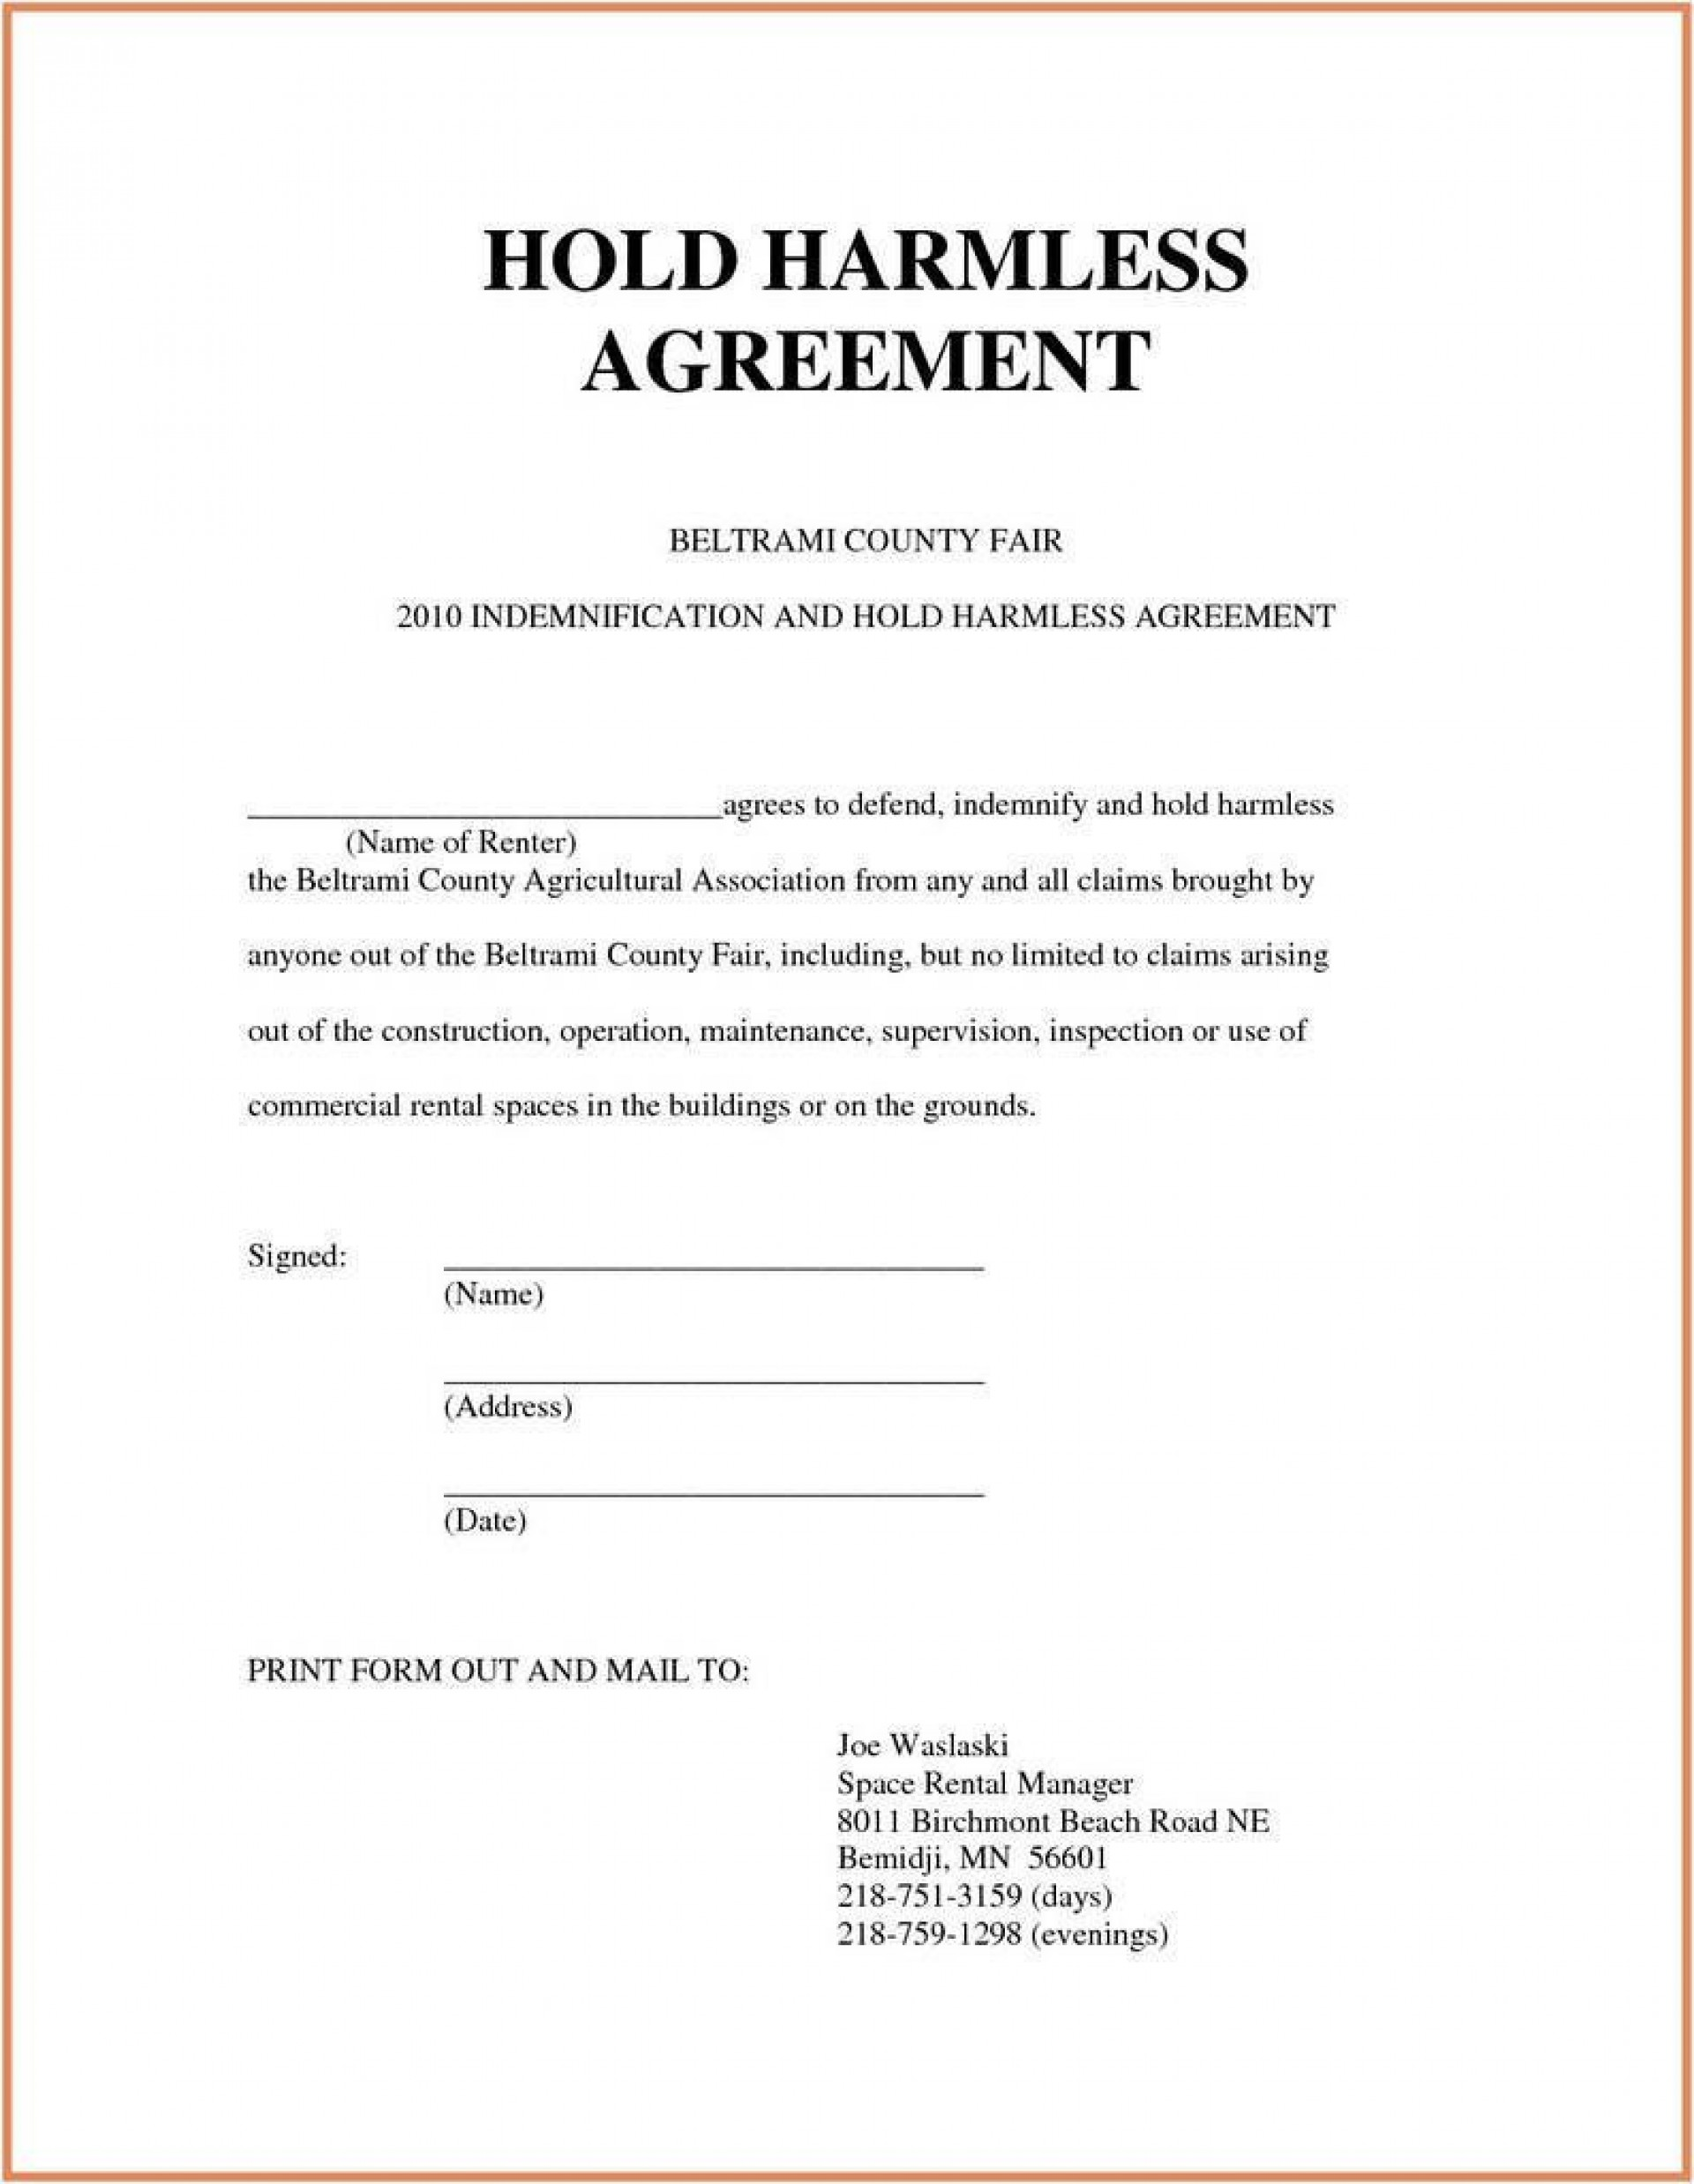 007 Dreaded Hold Harmles Agreement Template Design  Canada Word Free Download1920